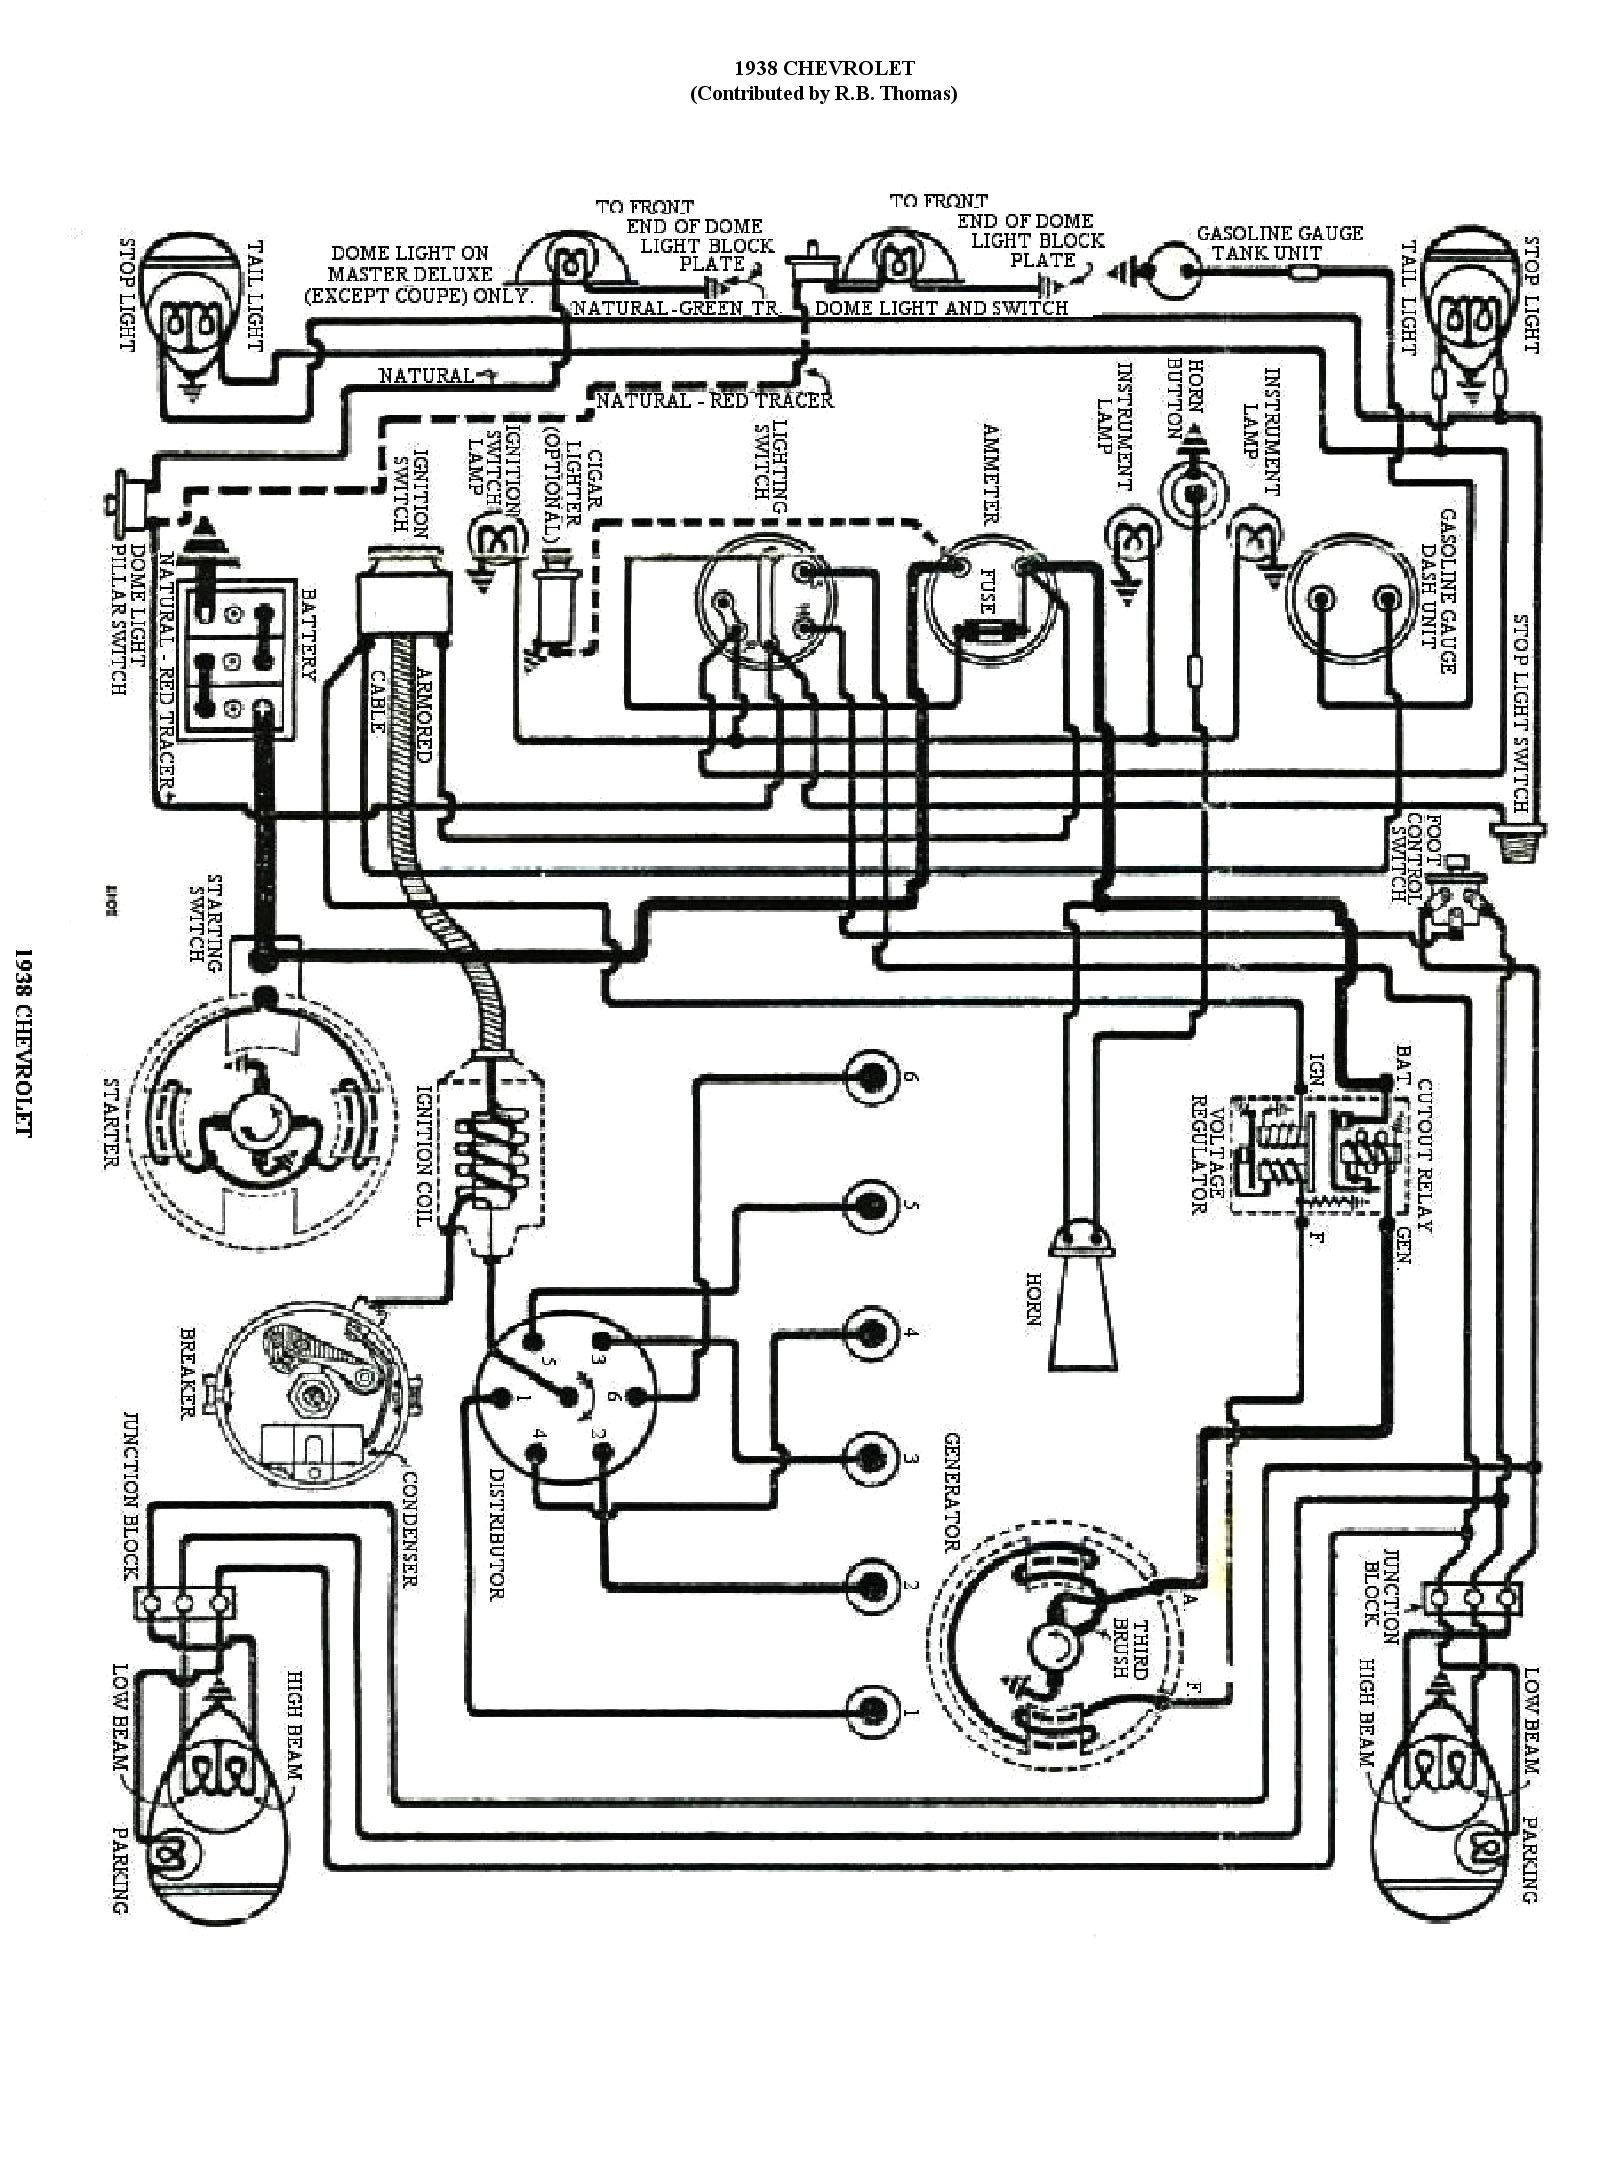 38wiring chevy wiring diagrams chevrolet wiring harness at mifinder.co